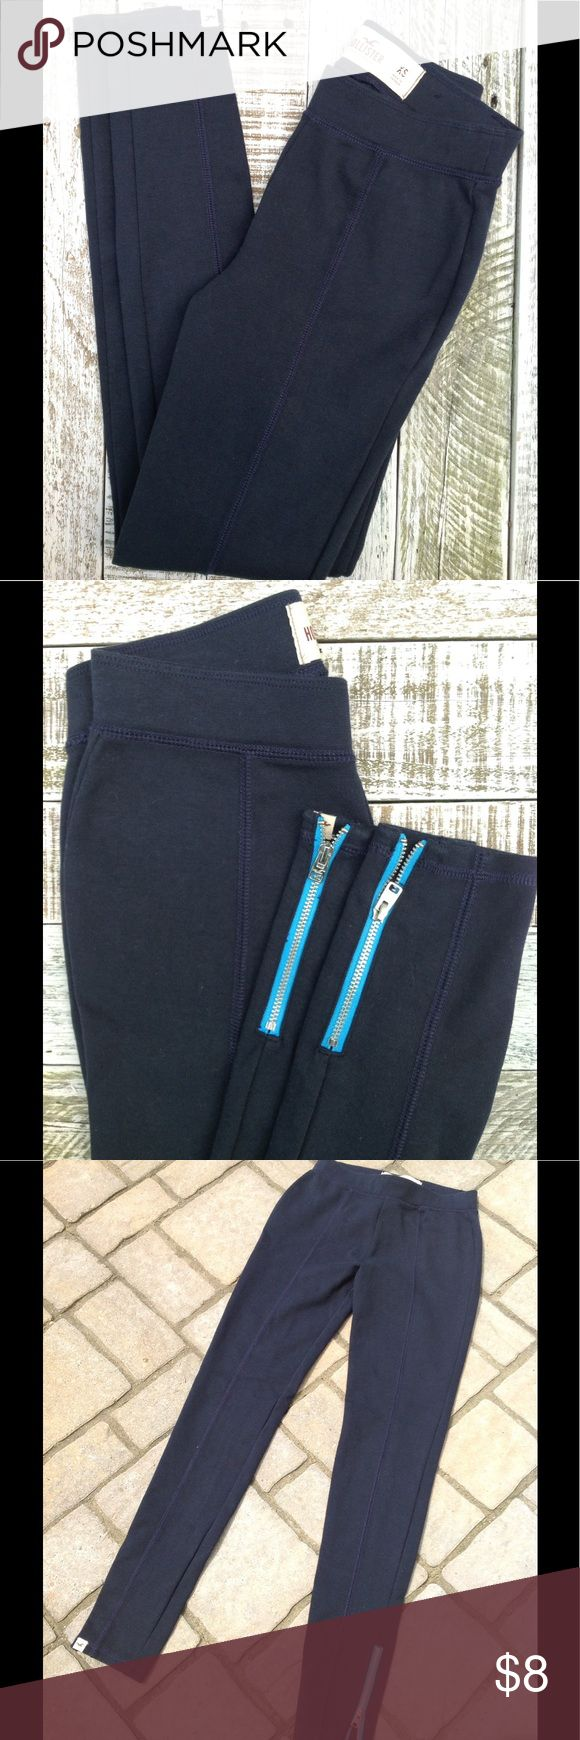 Hollister Leggings These are comfy leggings that were barely worn! Hollister Pants Leggings